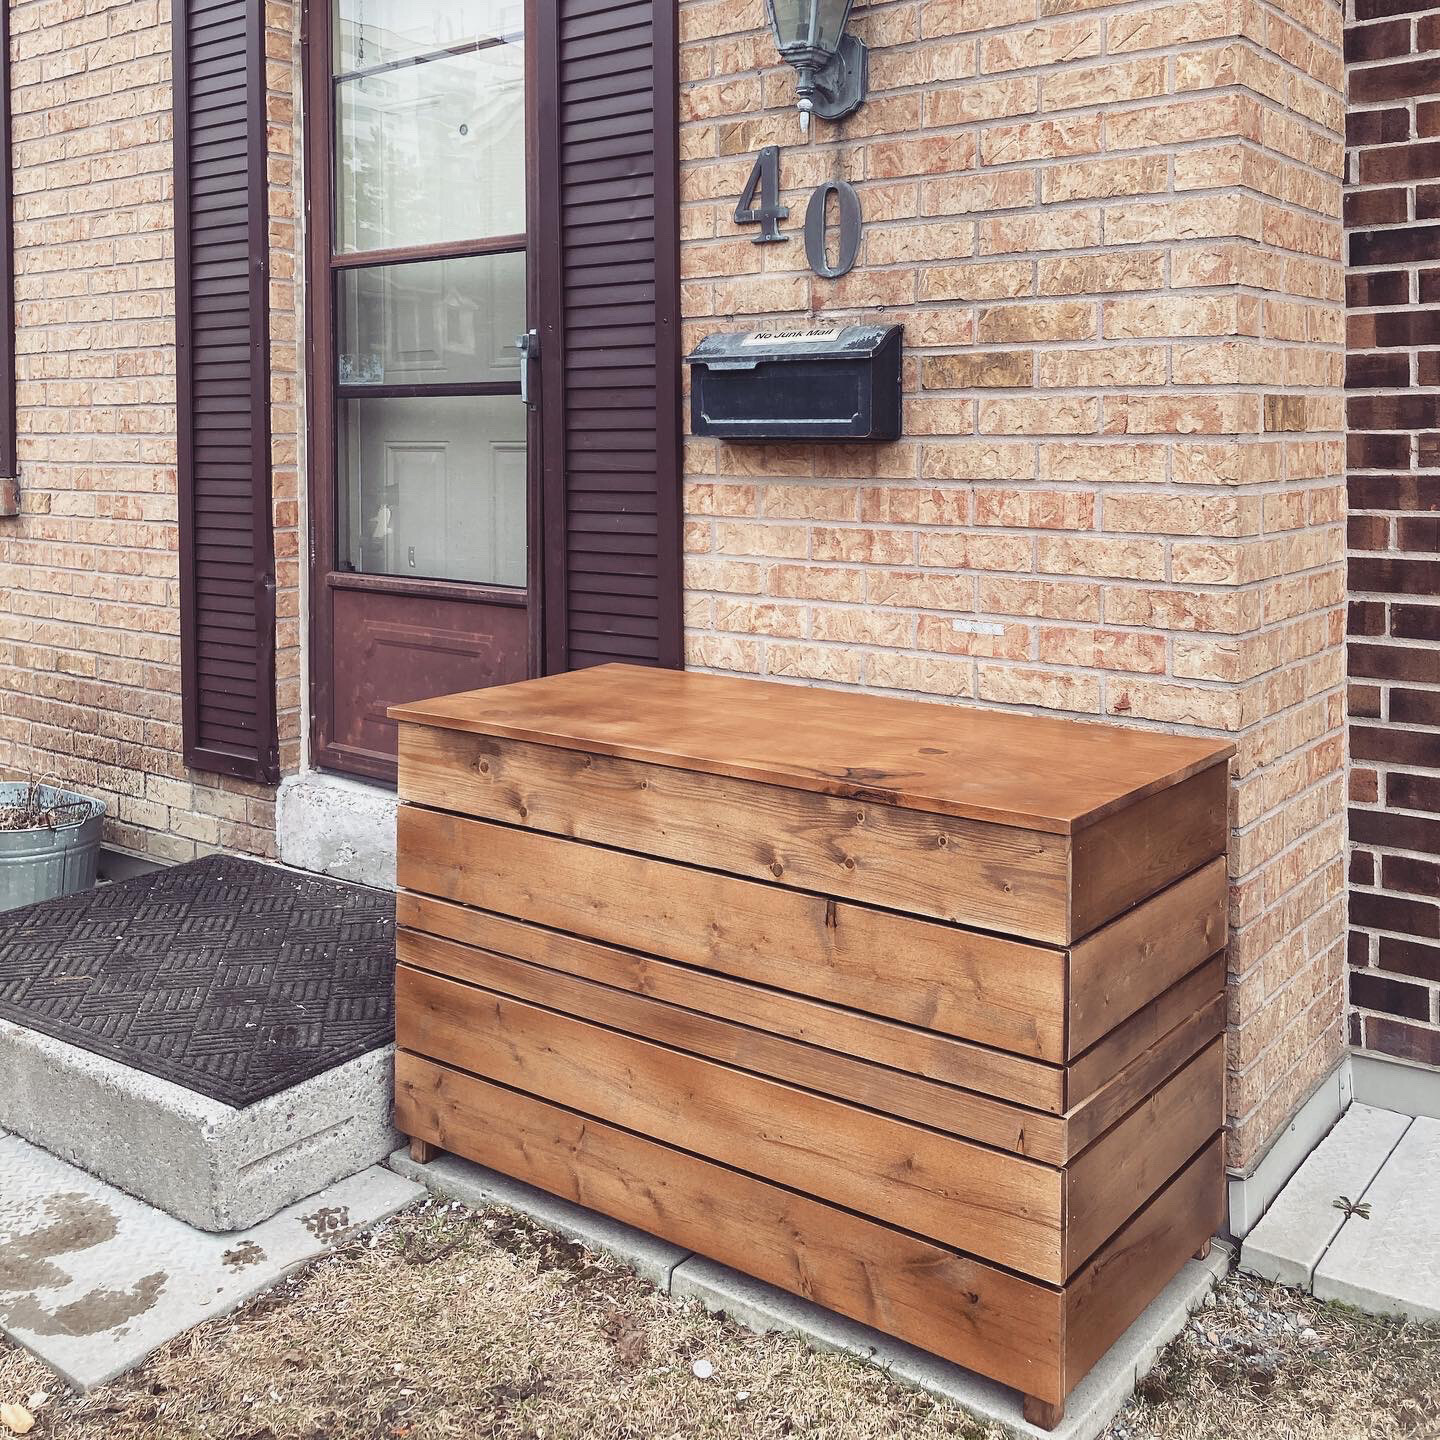 Planter Box - Indoor Or Outdoor Use